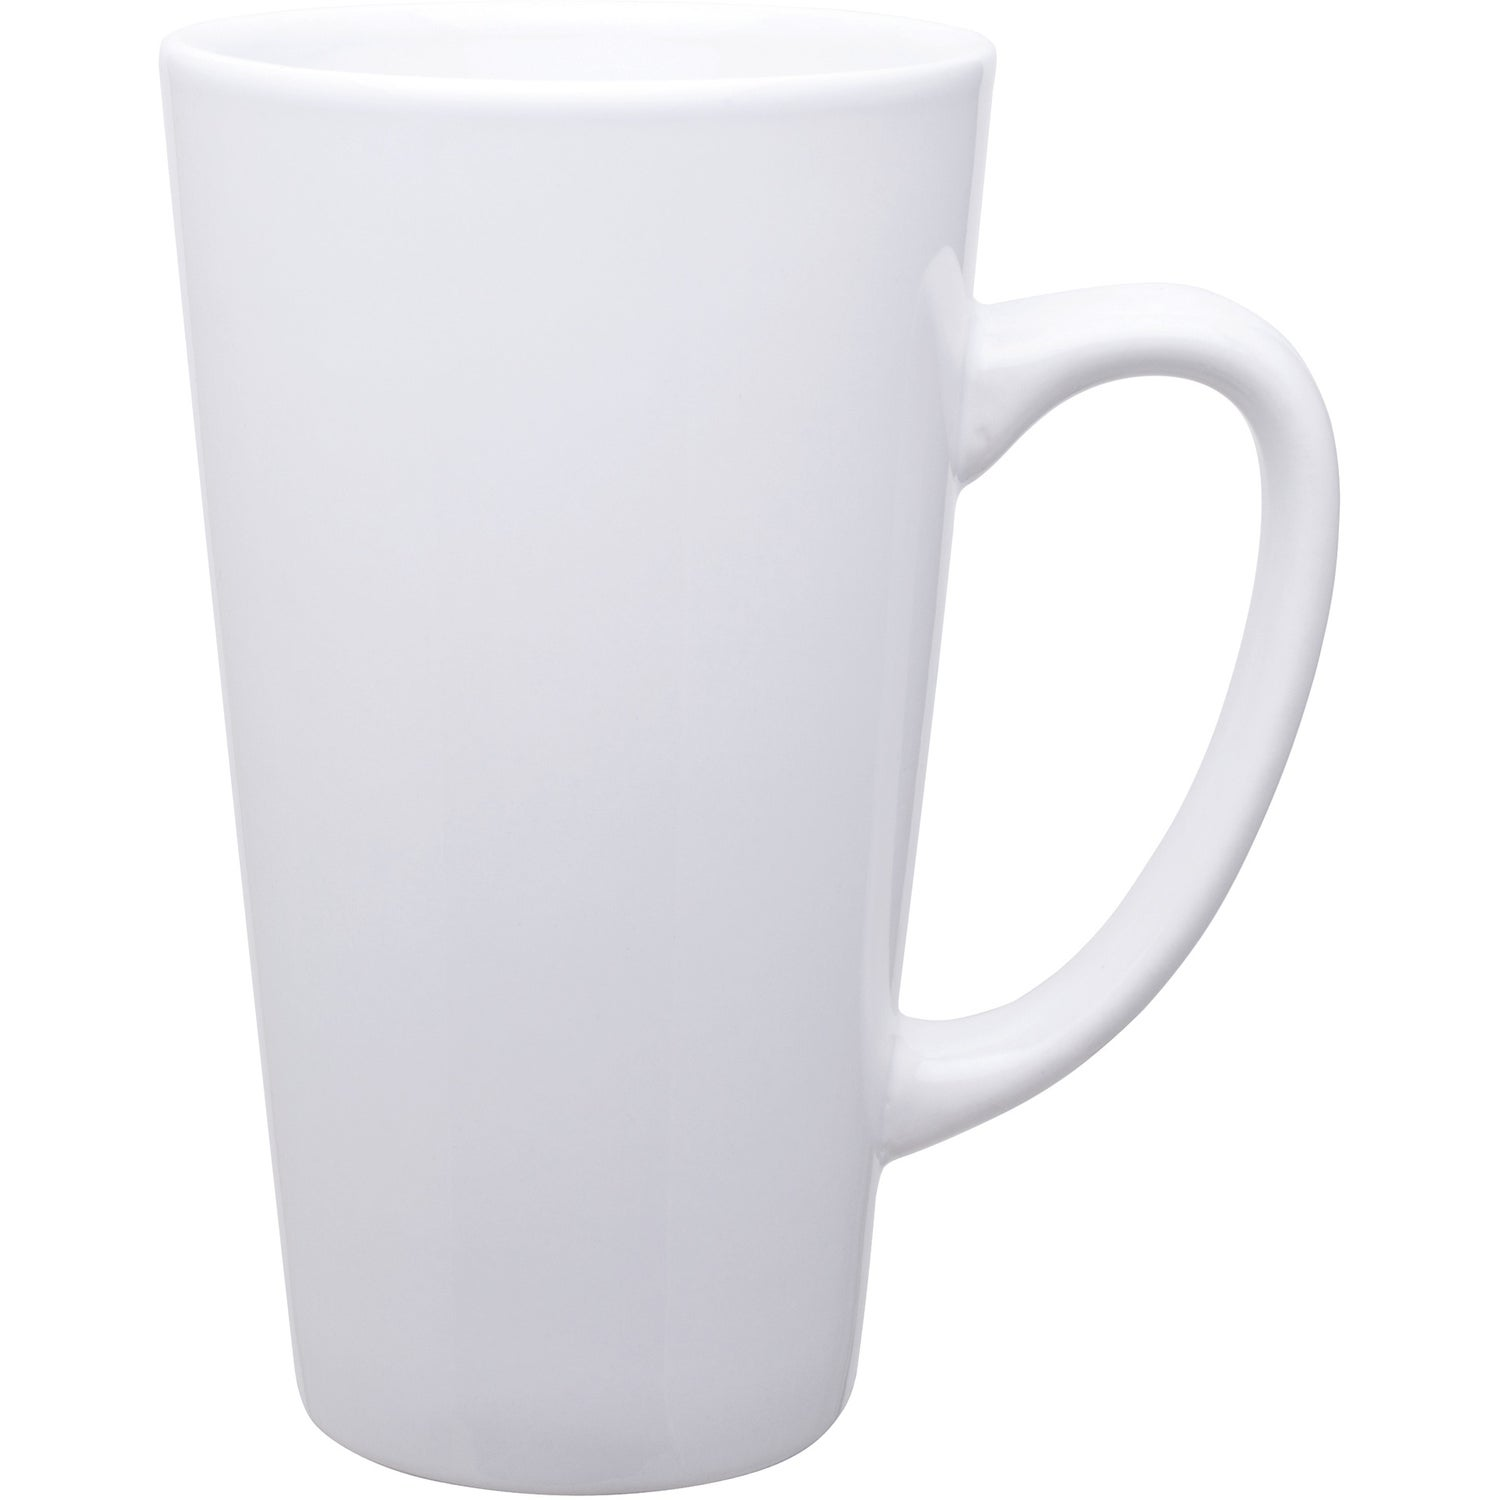 White Tall Latte Ceramic Mug 16 Oz